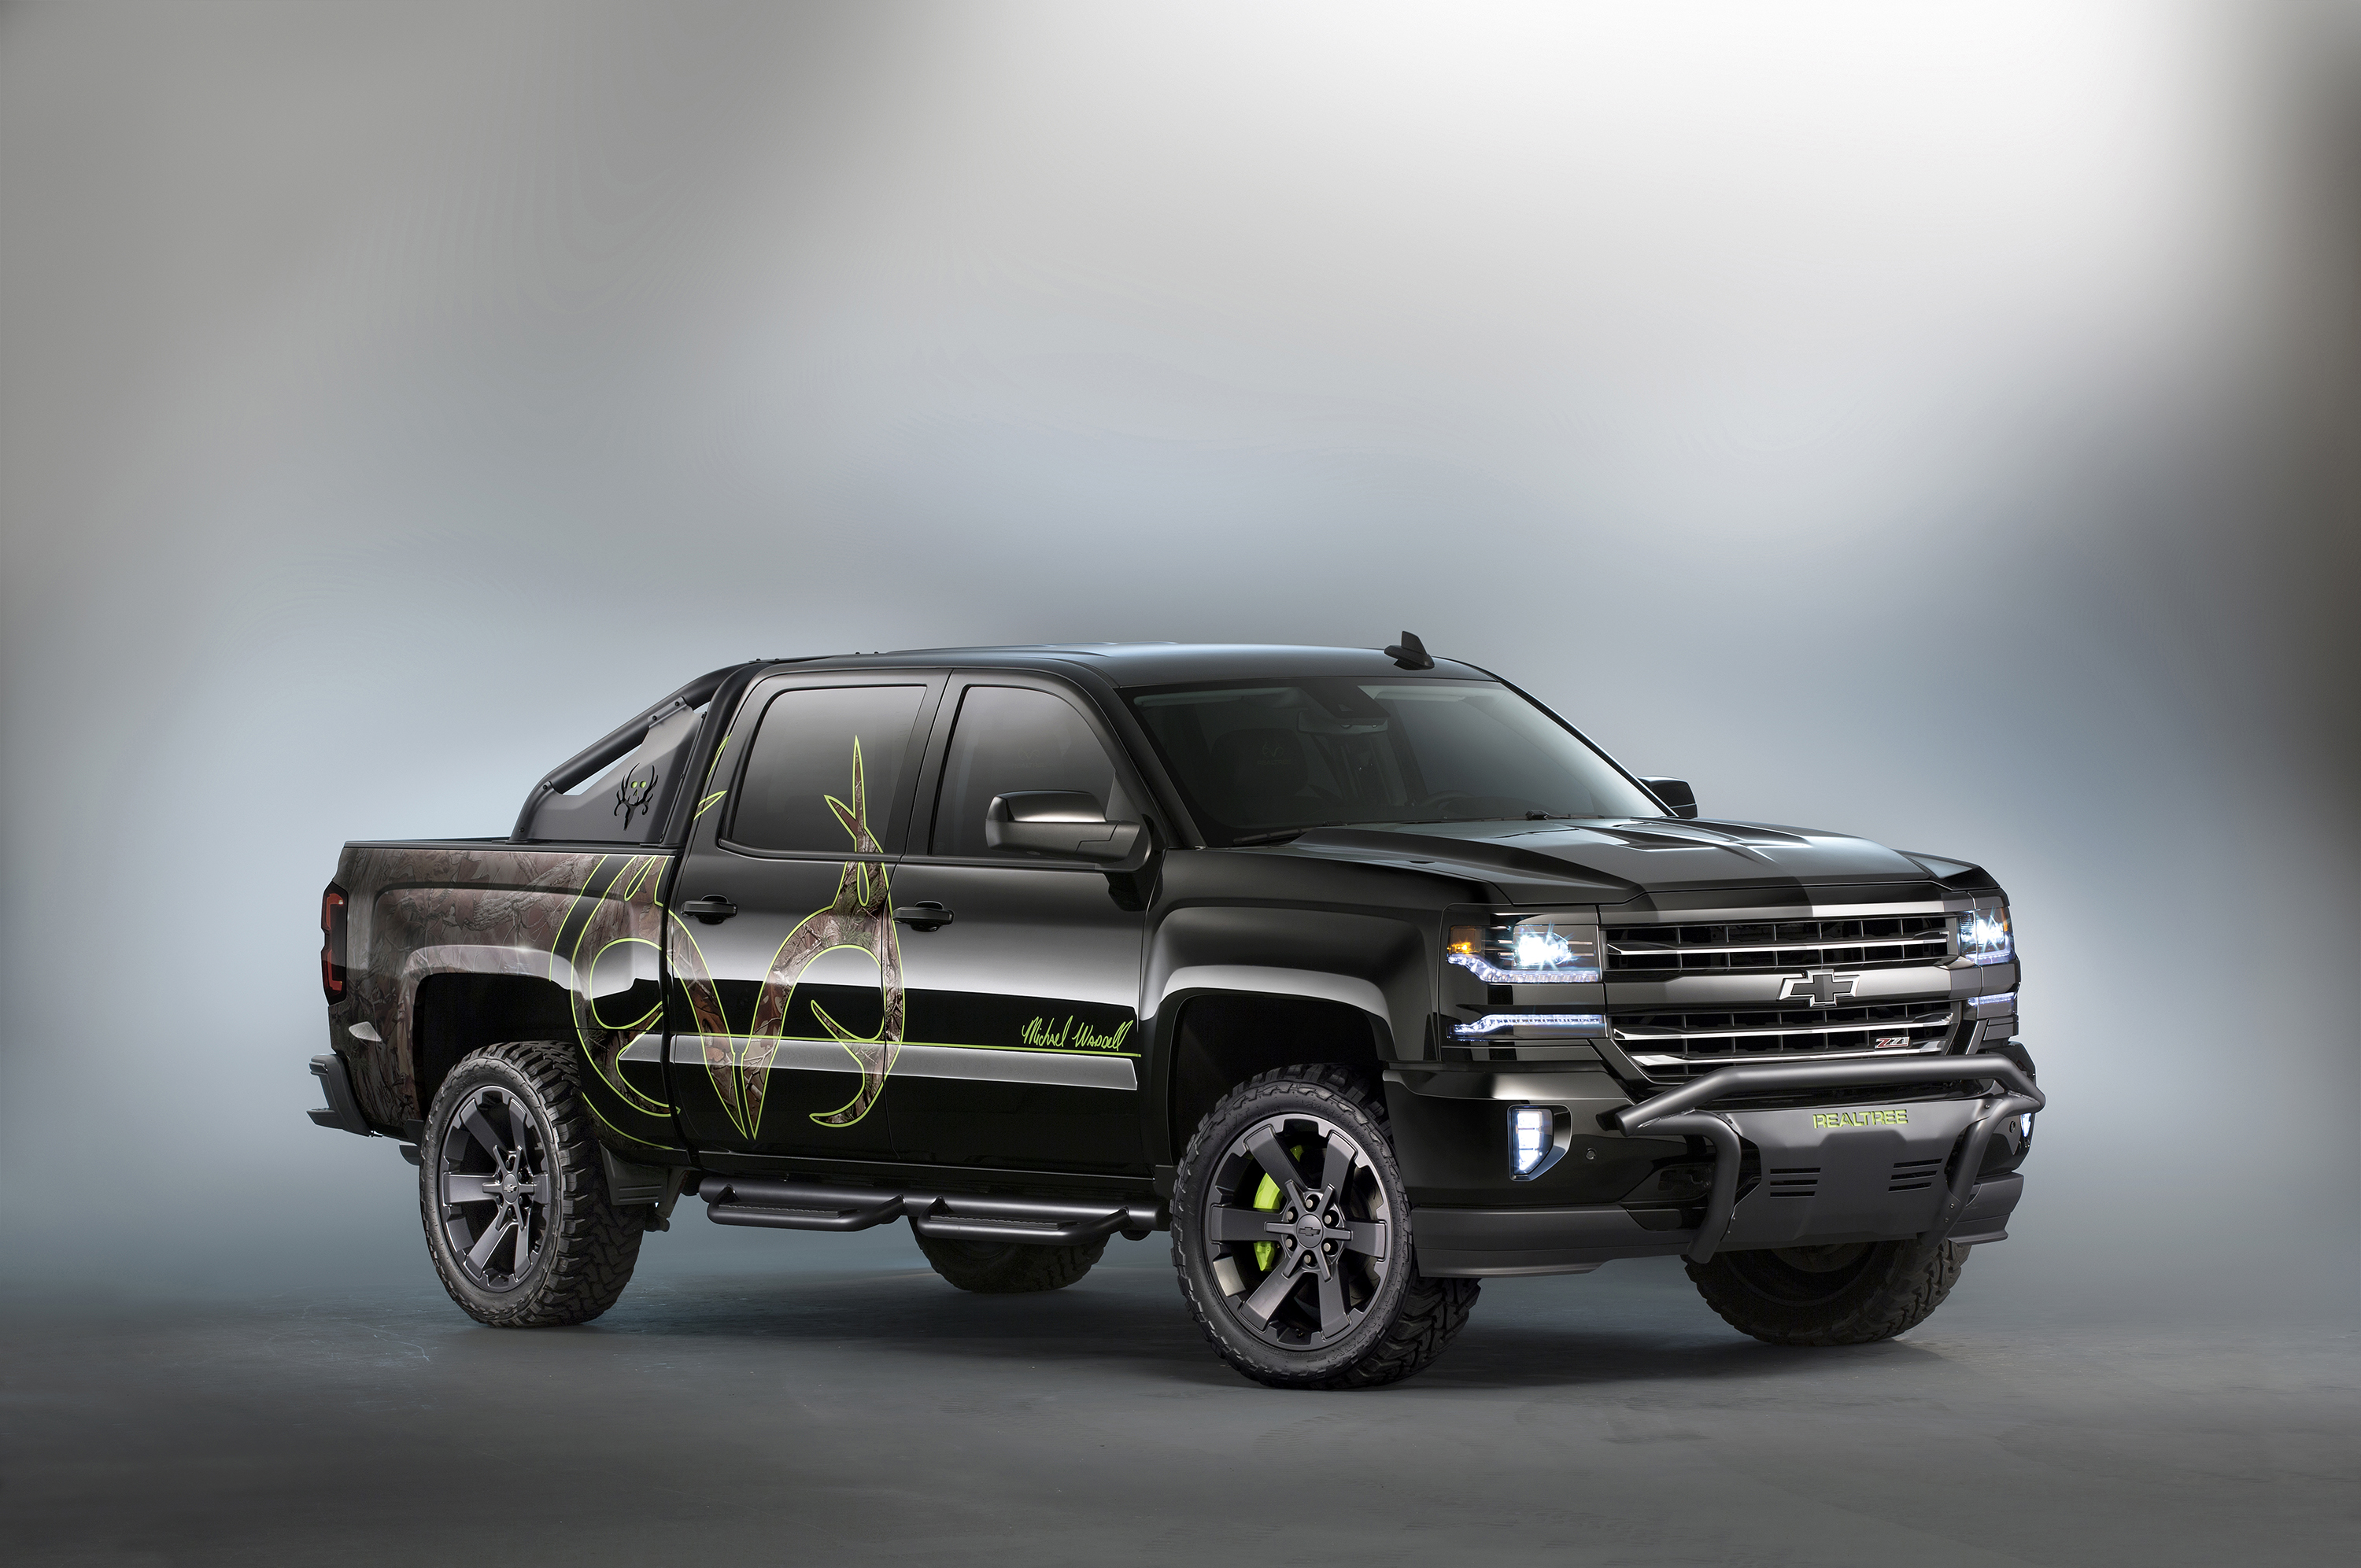 Chevy realtree concept truck